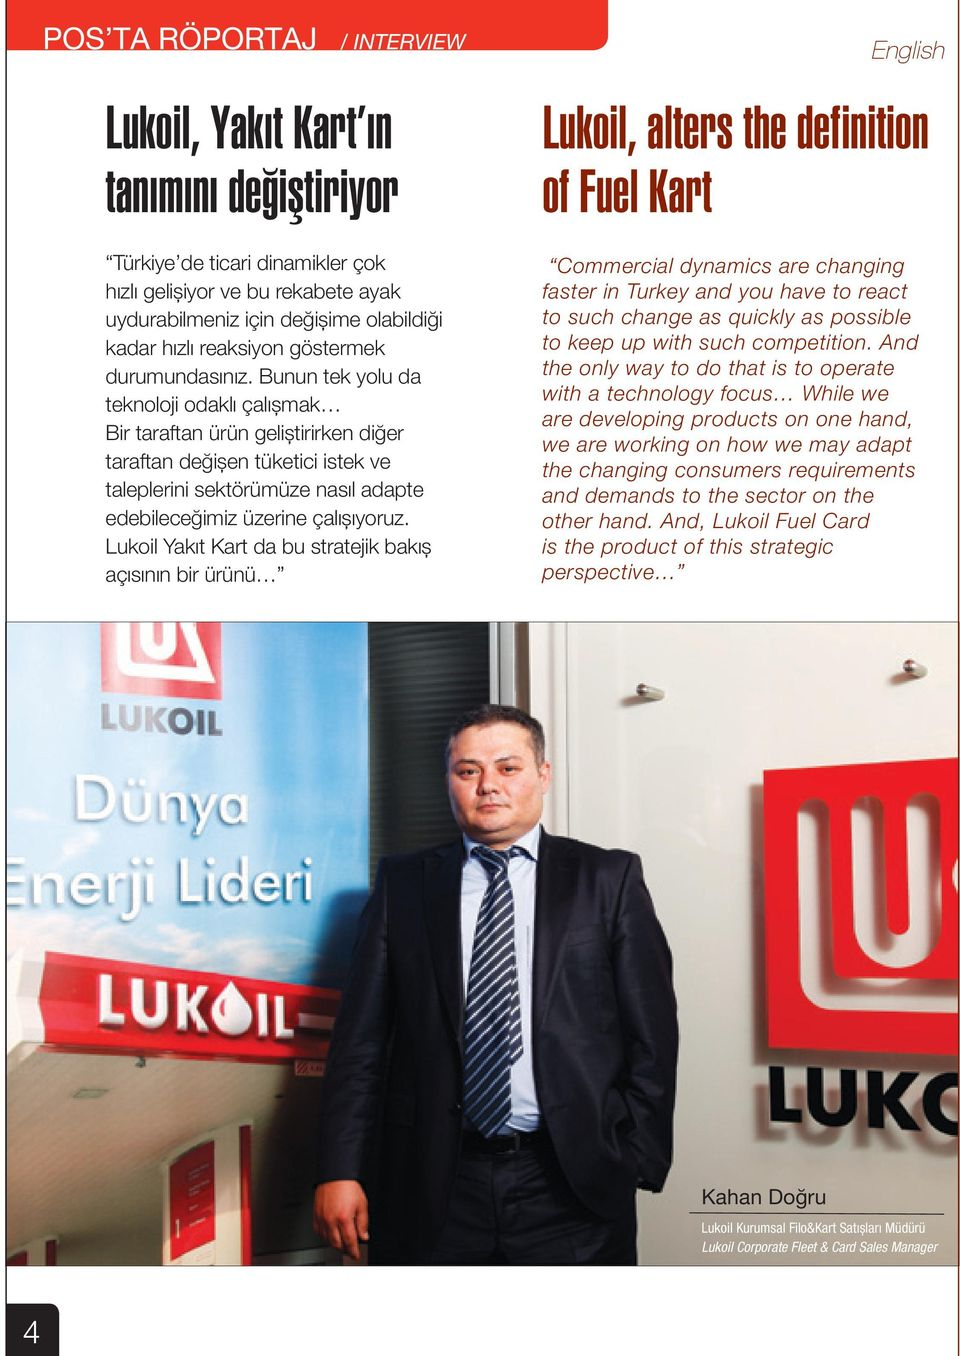 Lukoil Yakıt Kart da bu stratejik bakış açısının bir ürünü English Lukoil, alters the definition of Fuel Kart Commercial dynamics are changing faster in Turkey and you have to react to such change as